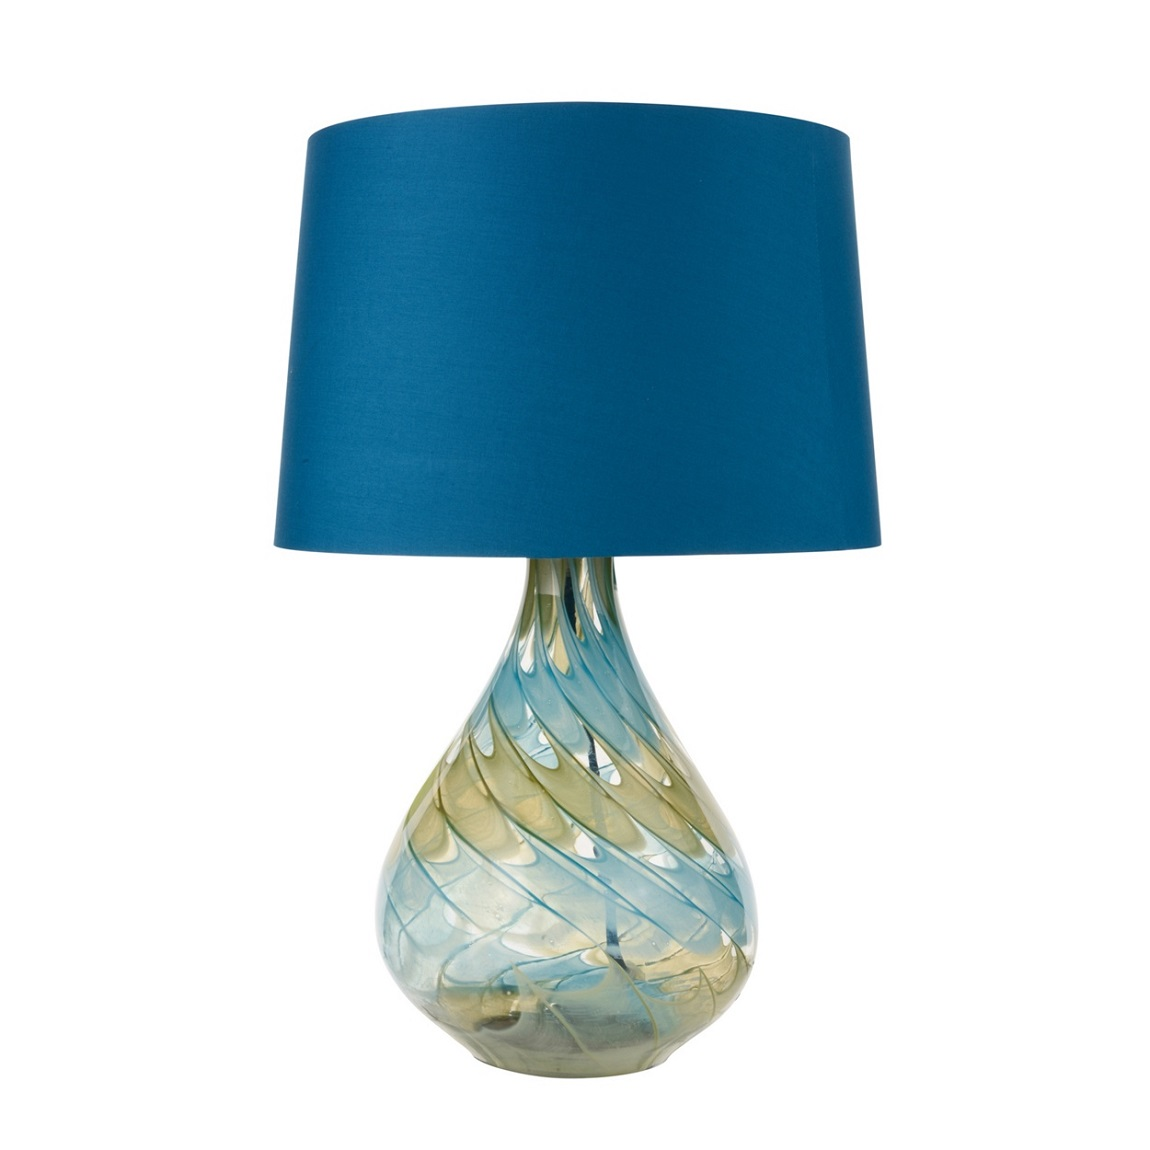 Butterfly Home By Matthew Williamson Glass Table Lamp